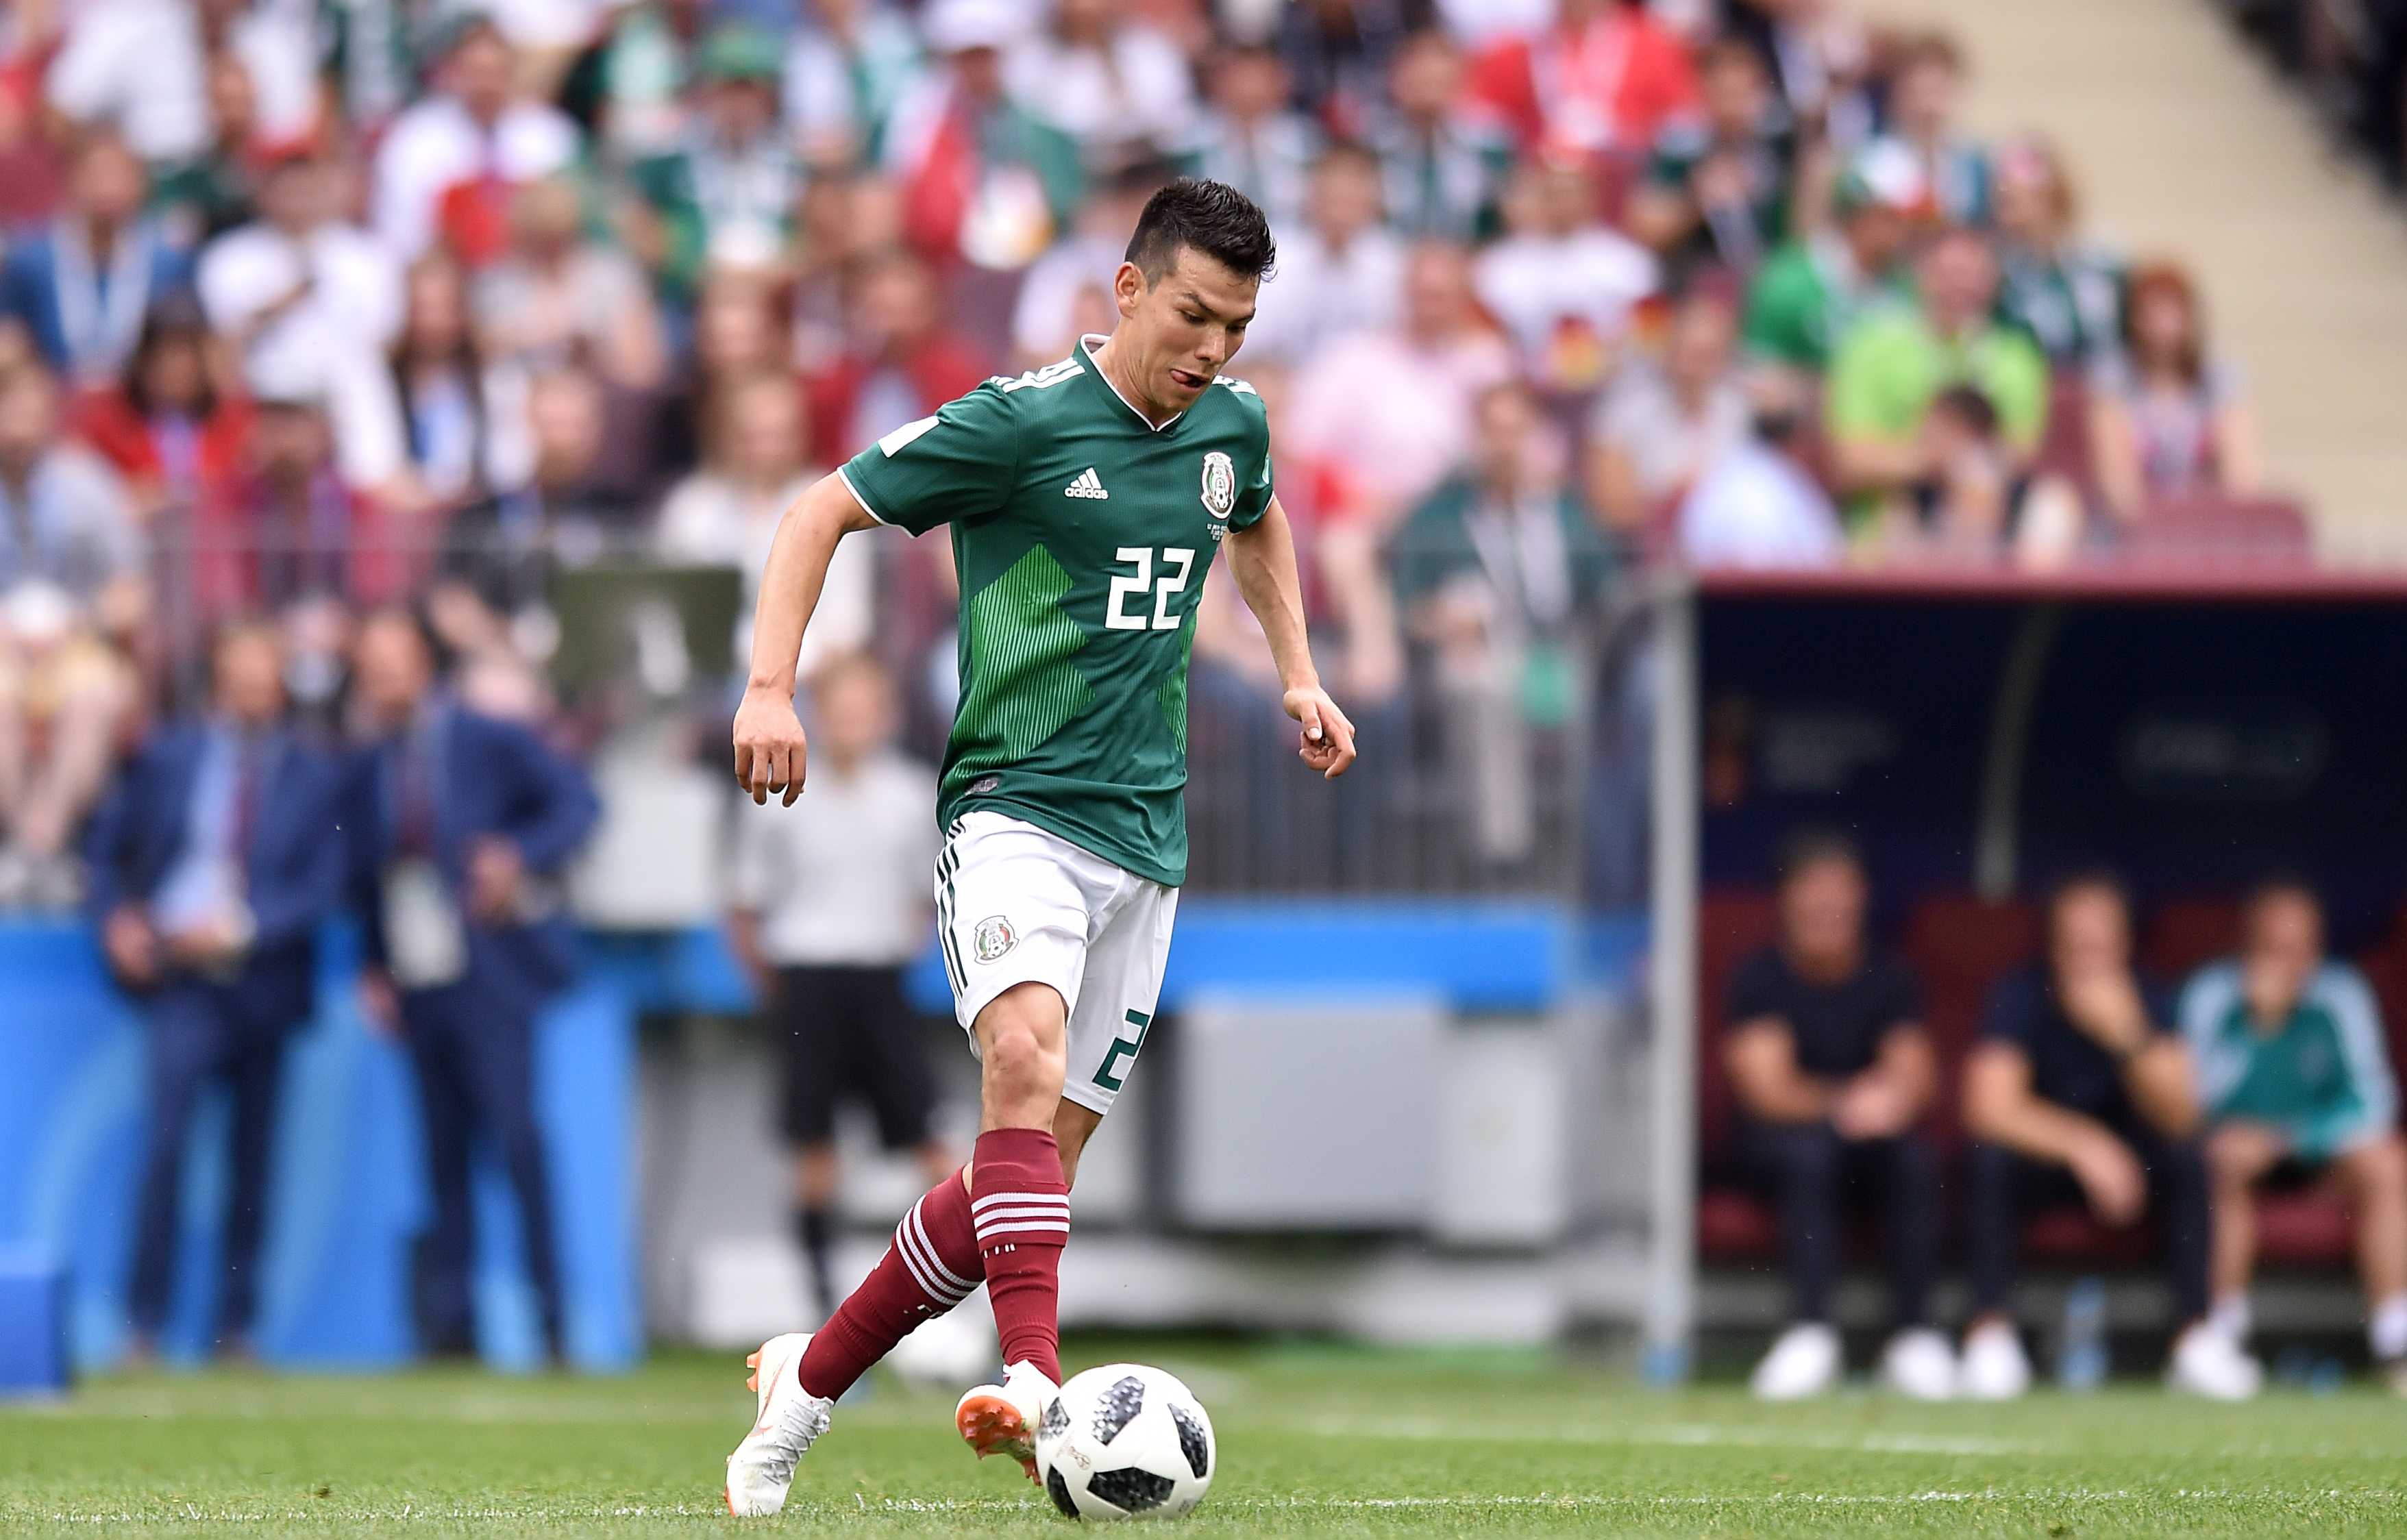 Hirving Lozano of Mexico in action during the 2018 FIFA World Cup Russia group F match between Germany and Mexico at Luzhniki Stadium on June 17, 2018 in Moscow, Russia.